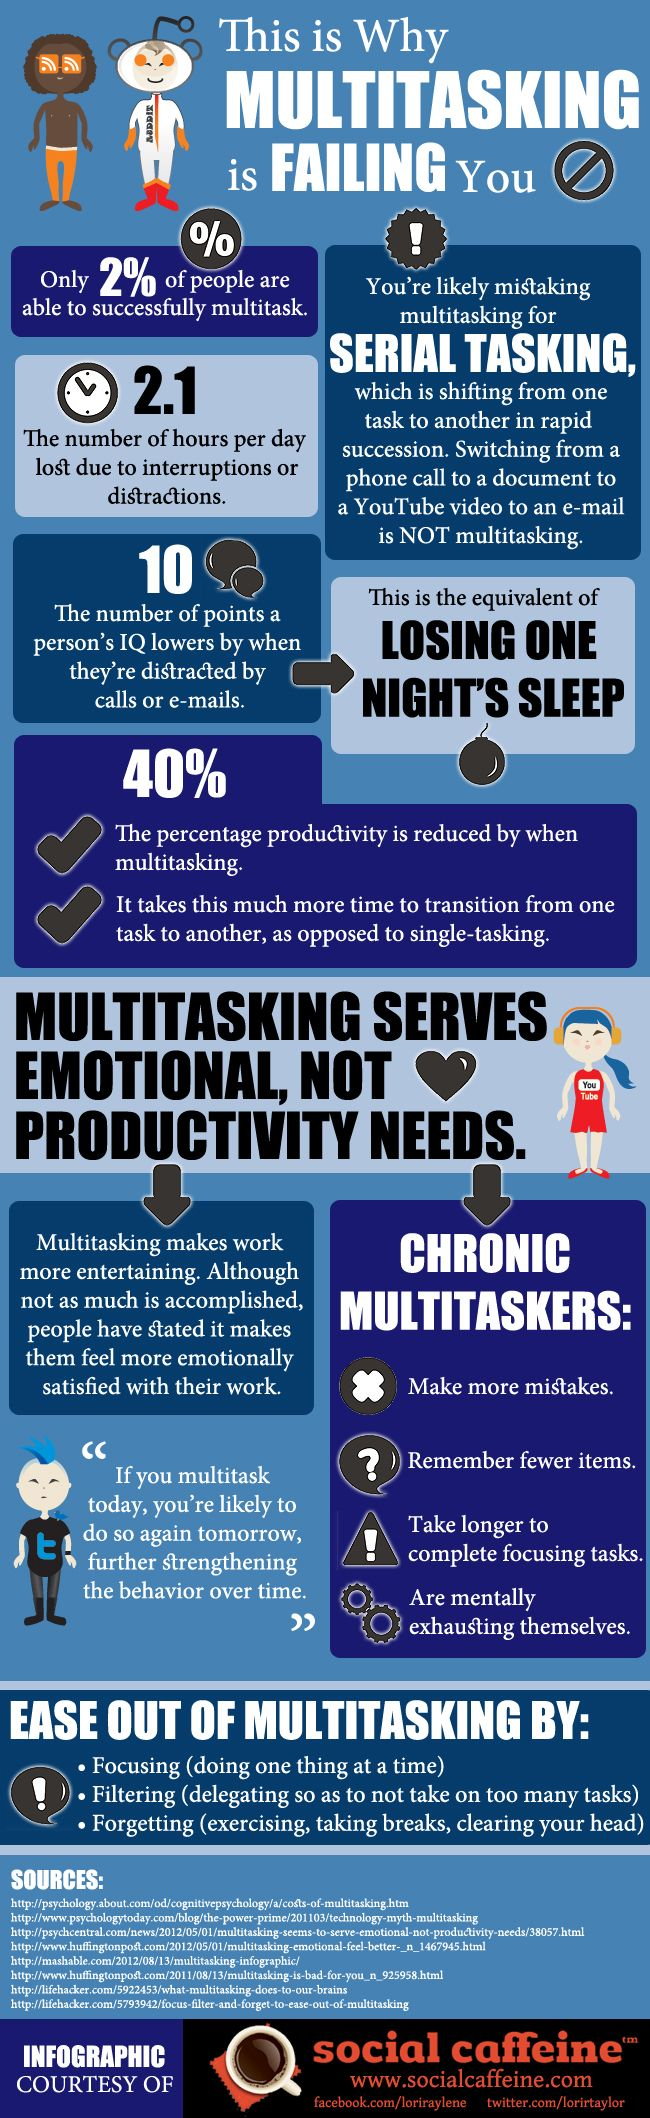 This infographic can be problematic because each child (and each adult) is unique. If ever there is a rule, one can reasonably infer there are exceptions. Caffeine makes ADHD children sleepy, for instance. Emotional satisfaction tends to yield greater productivity than emotional dissatisfaction among certain personality types. So using a rigid rule is probably not the smart way to go. - ME